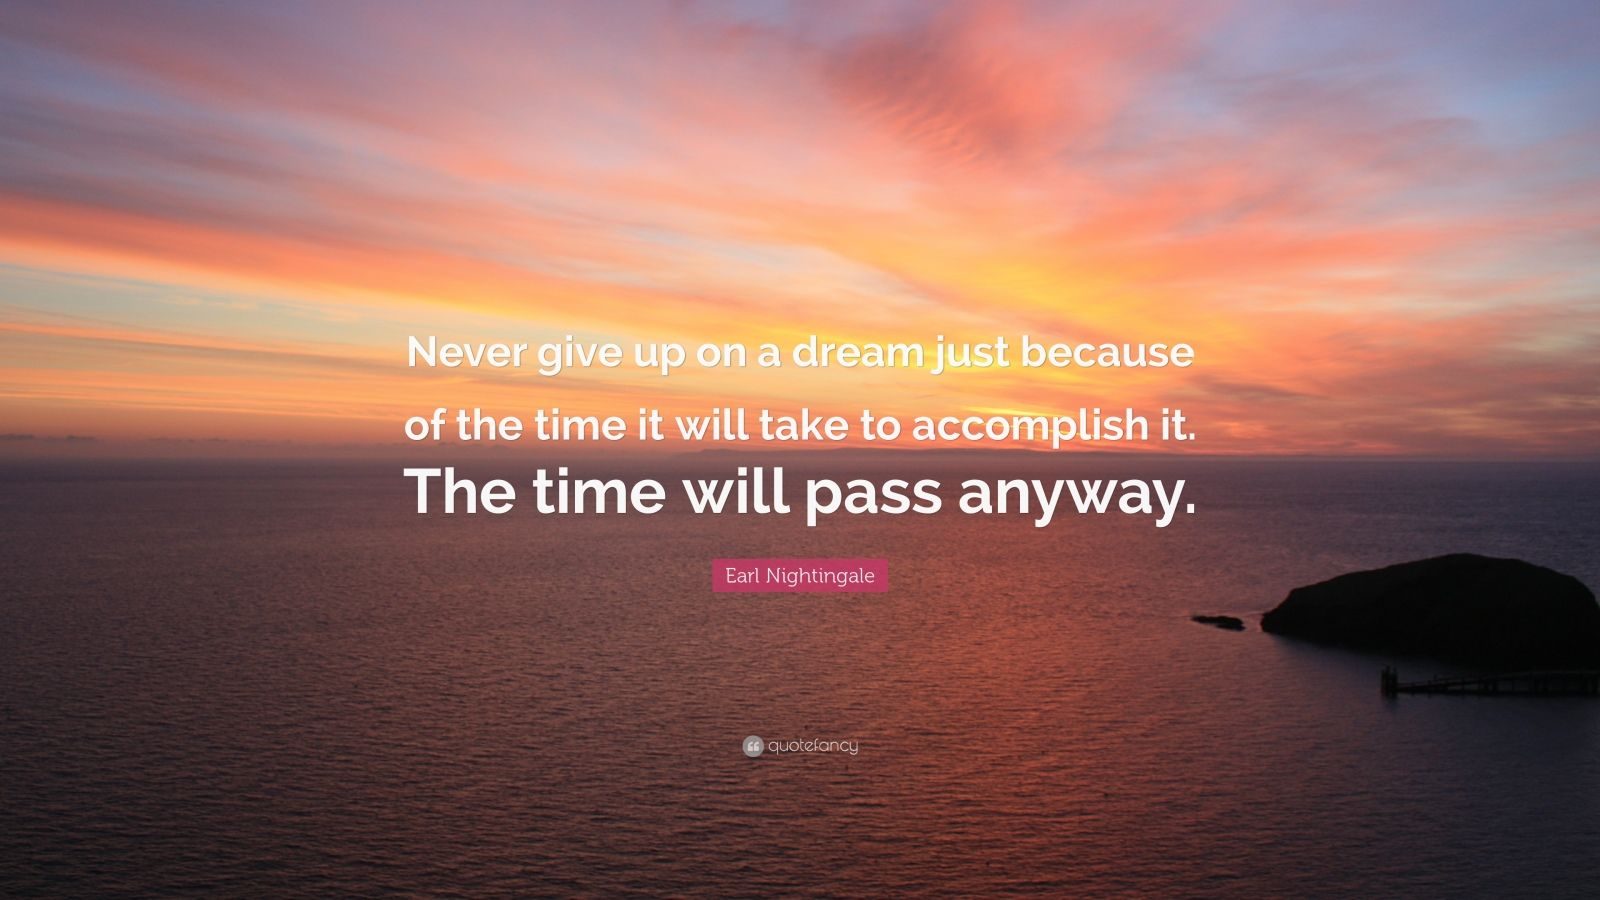 """Earl Nightingale Quote: """"Never give up on a dream just because of the time it will take to accomplish it. The time will pass anyway."""""""